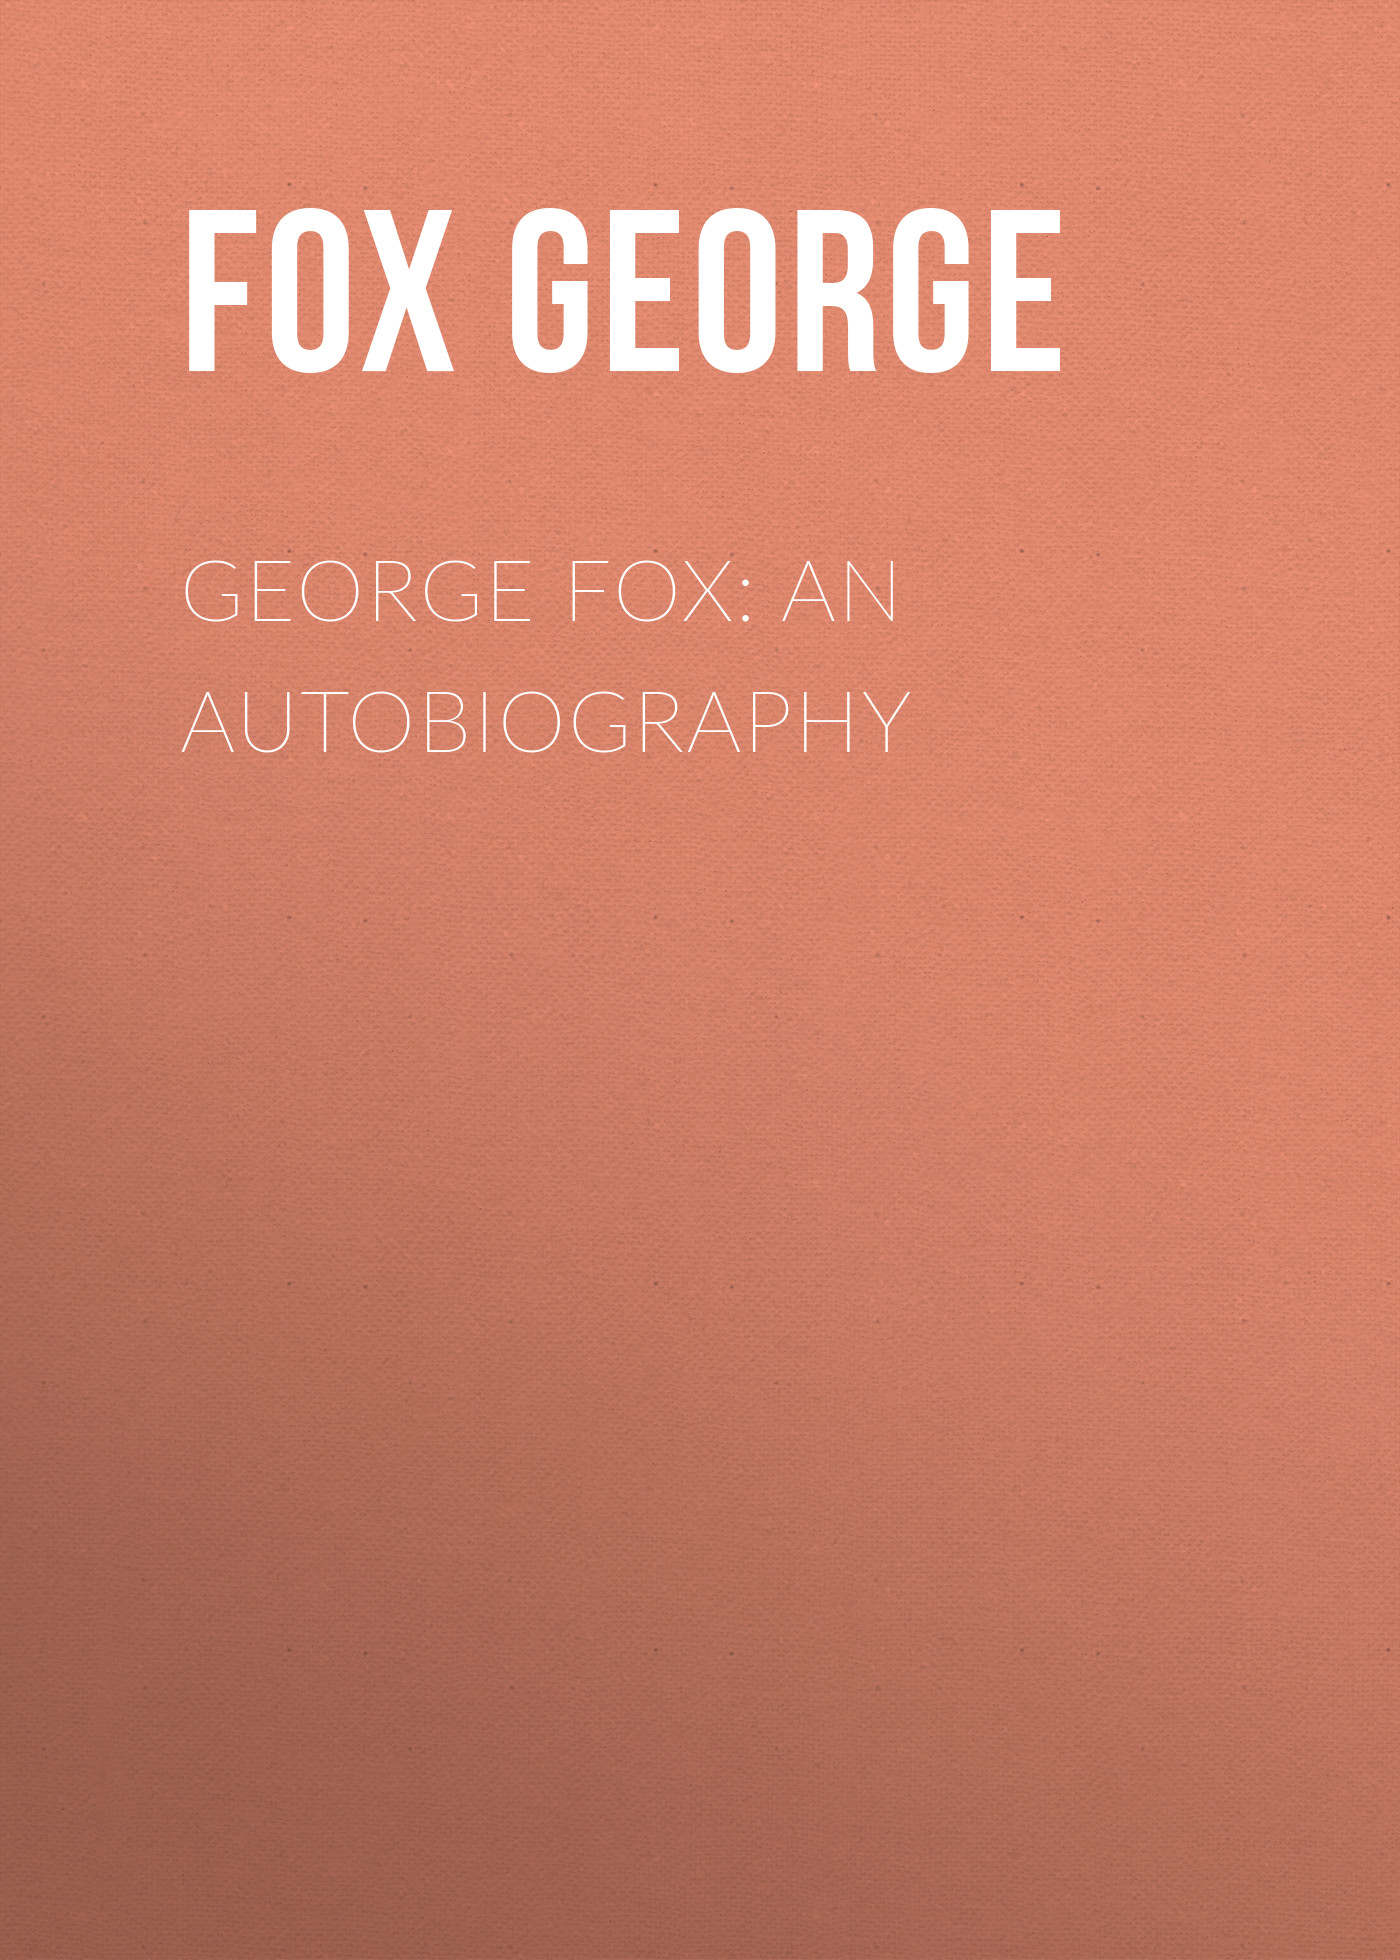 Fox George George Fox: An Autobiography george orwell 1984